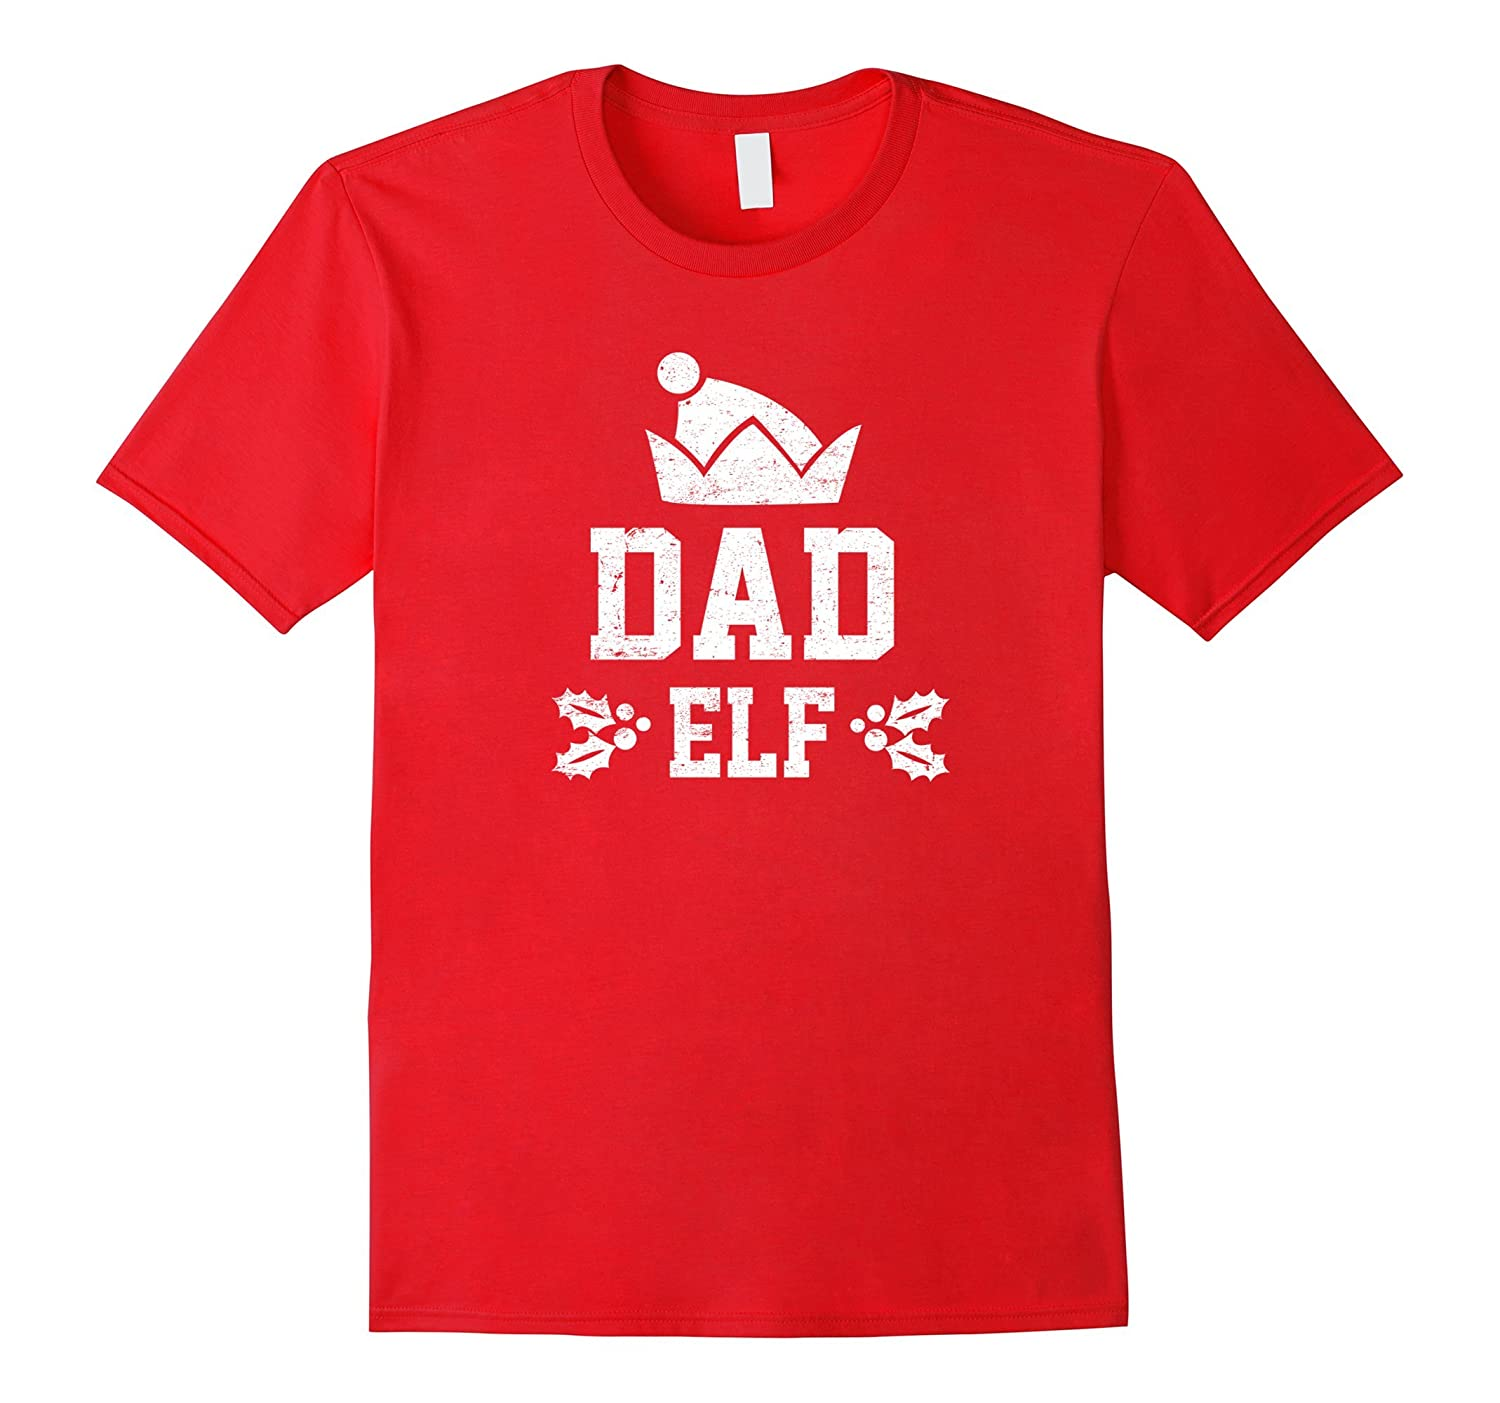 Dad Elf Pajama Christmas Holiday Season Funny Tshirt-FL